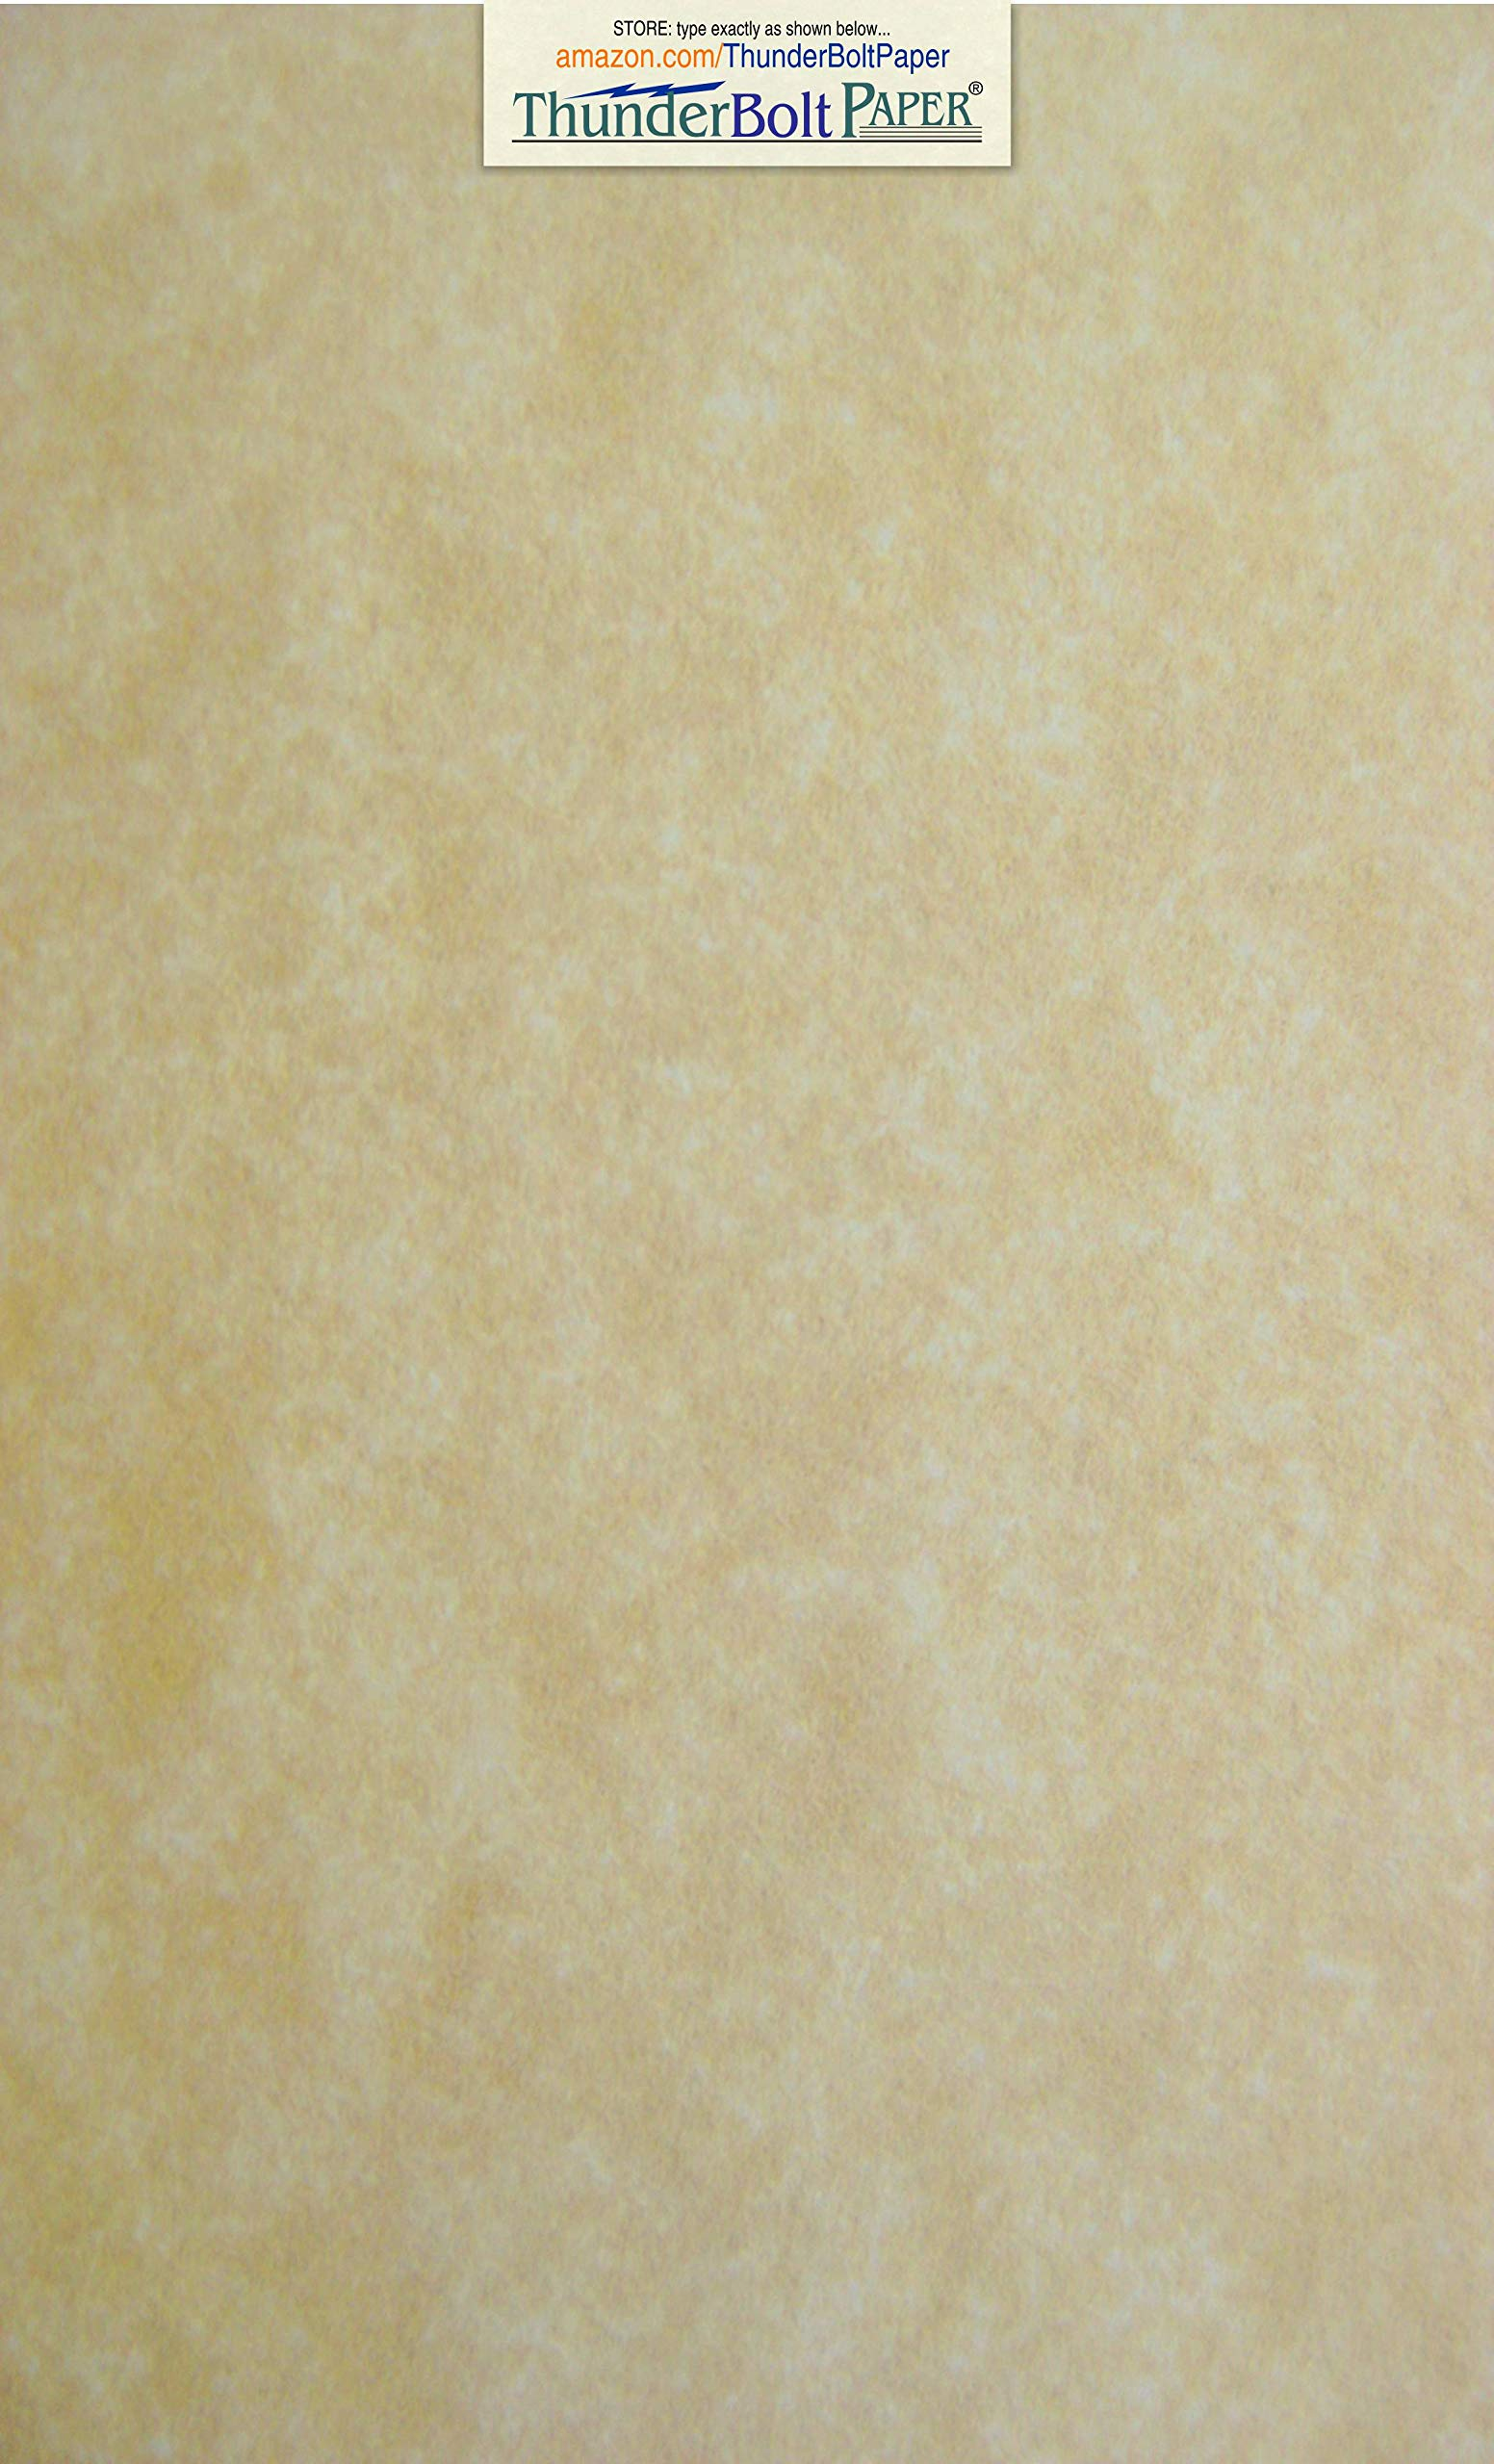 150 Old Age Parchment 60# Text (=24# Bond) Paper Sheets - 8.5'' X 14'' (8.5X14 Inches) Legal|Menu Size - 60 Pound is Not Card Weight - Vintage Colored Old Parchment Semblance by ThunderBolt Paper